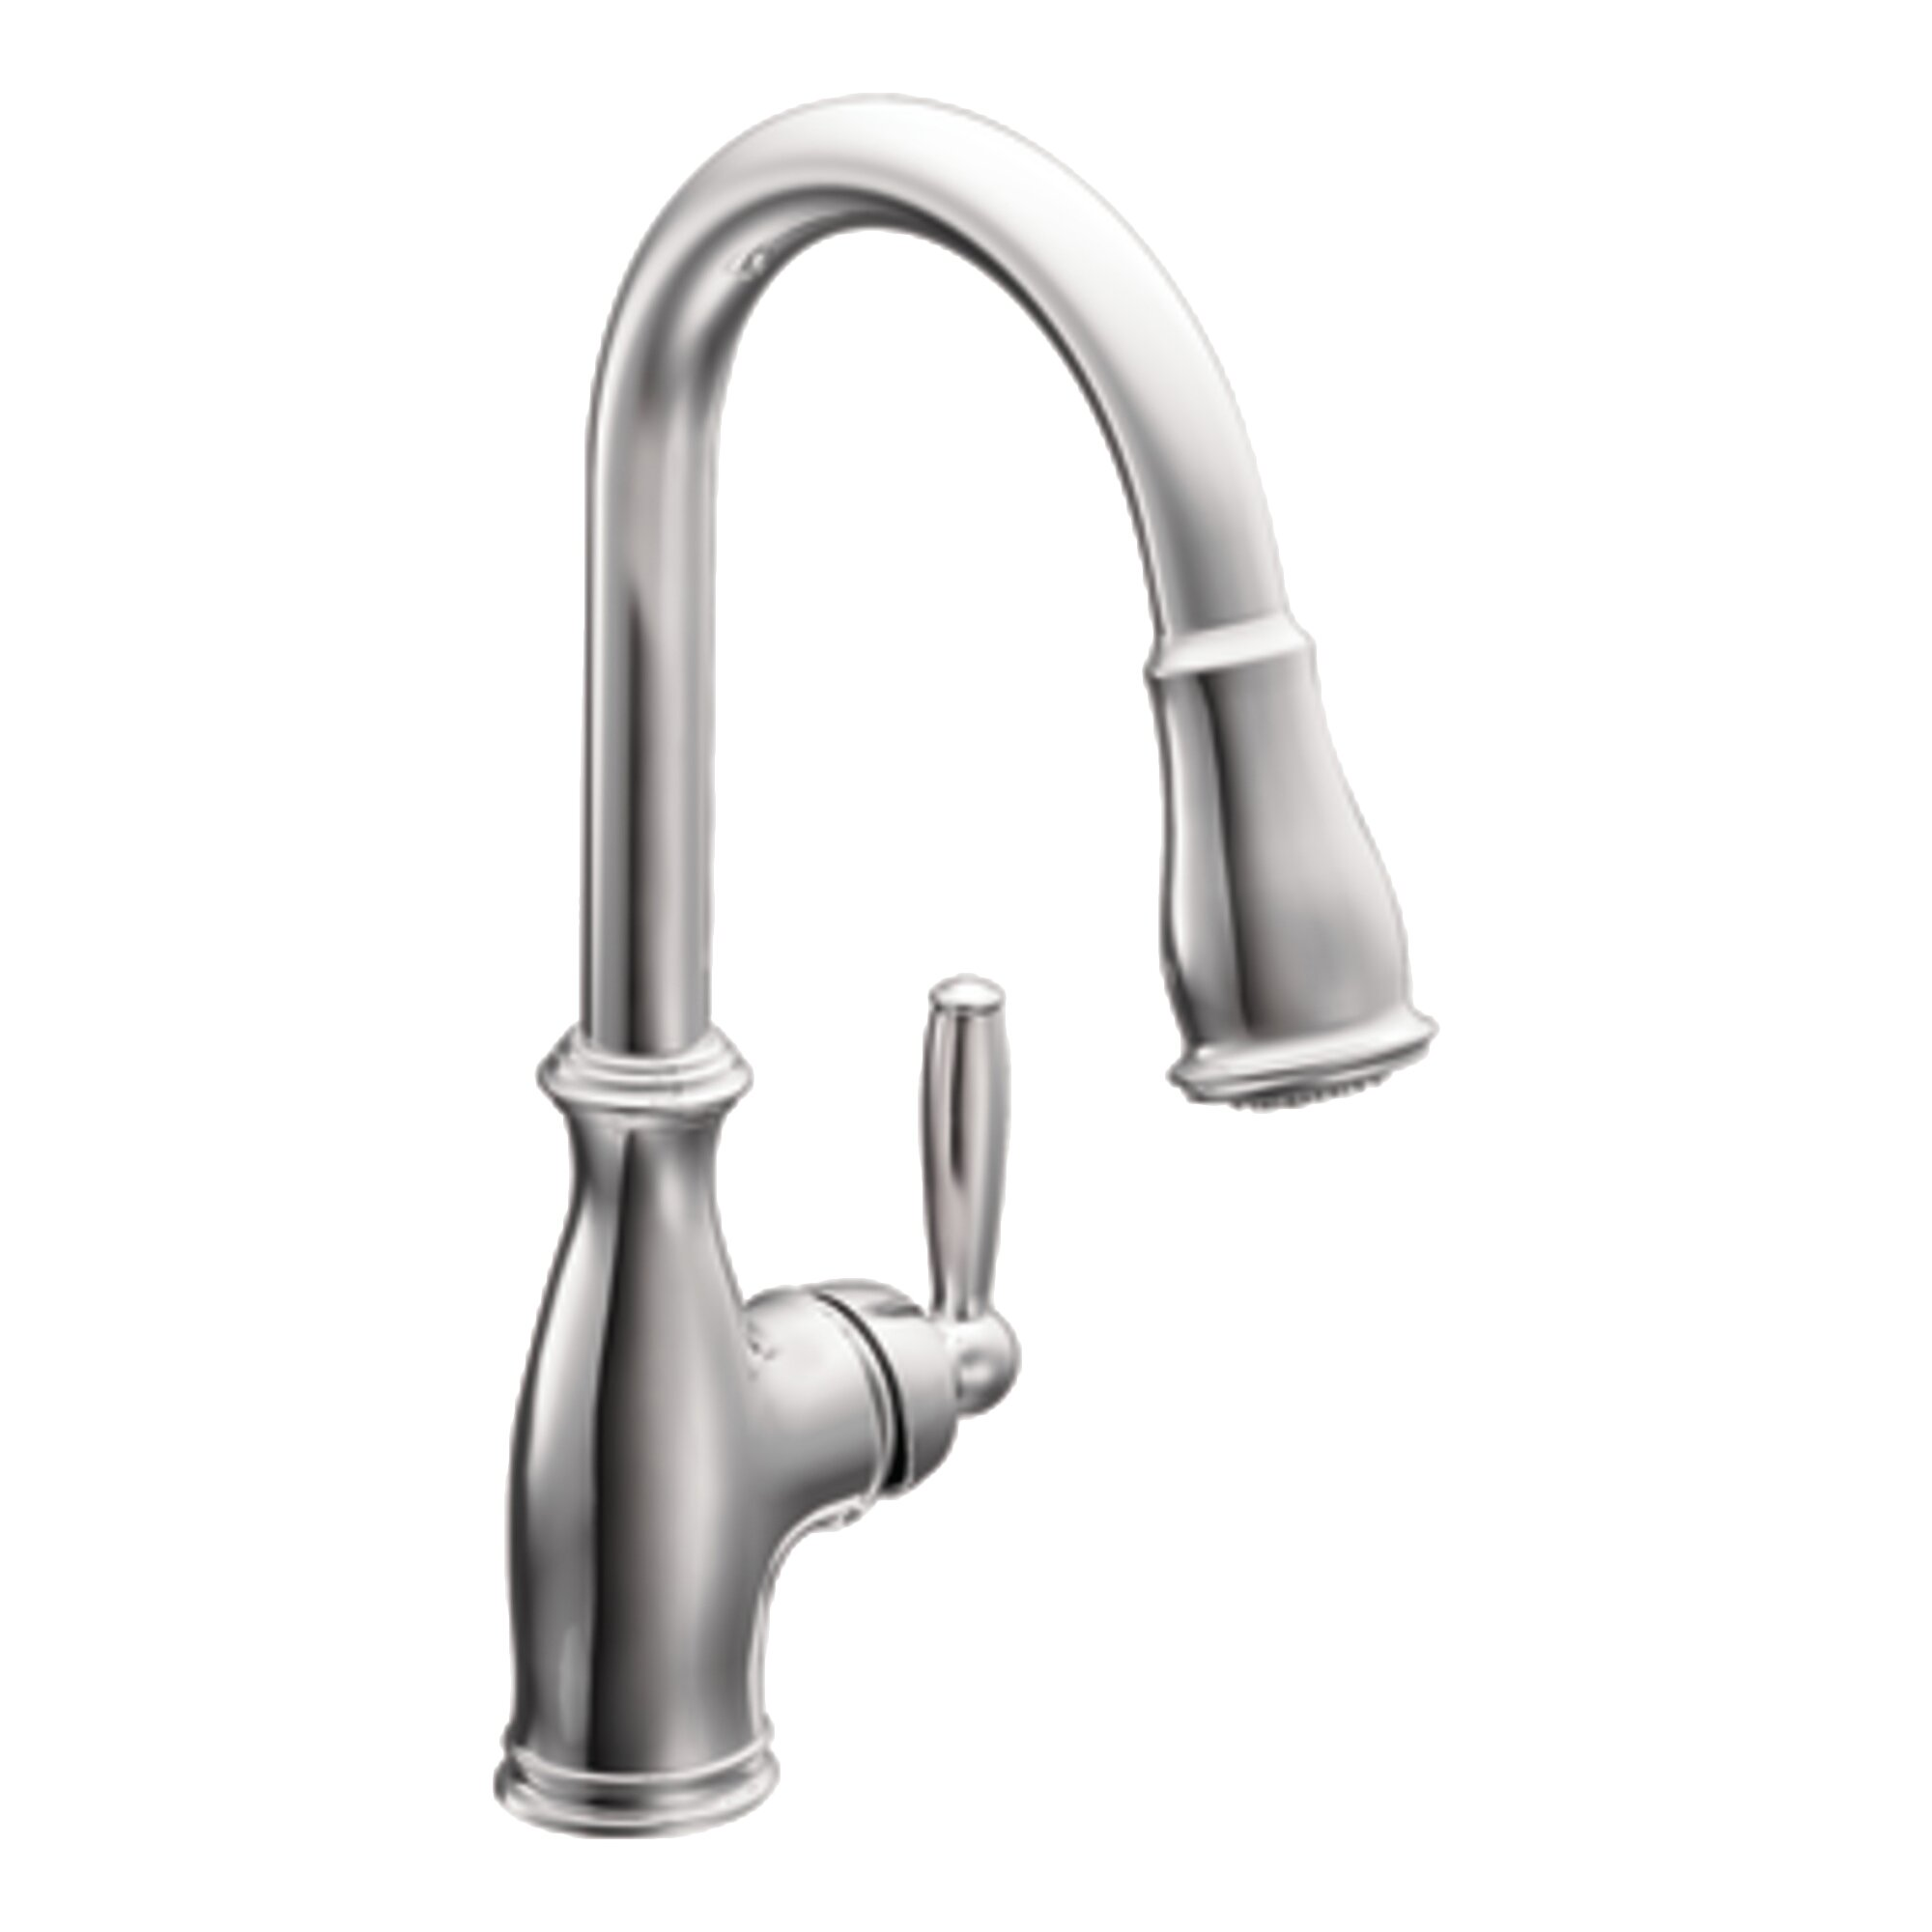 Moen Brantford Single Handle Kitchen Faucet & Reviews